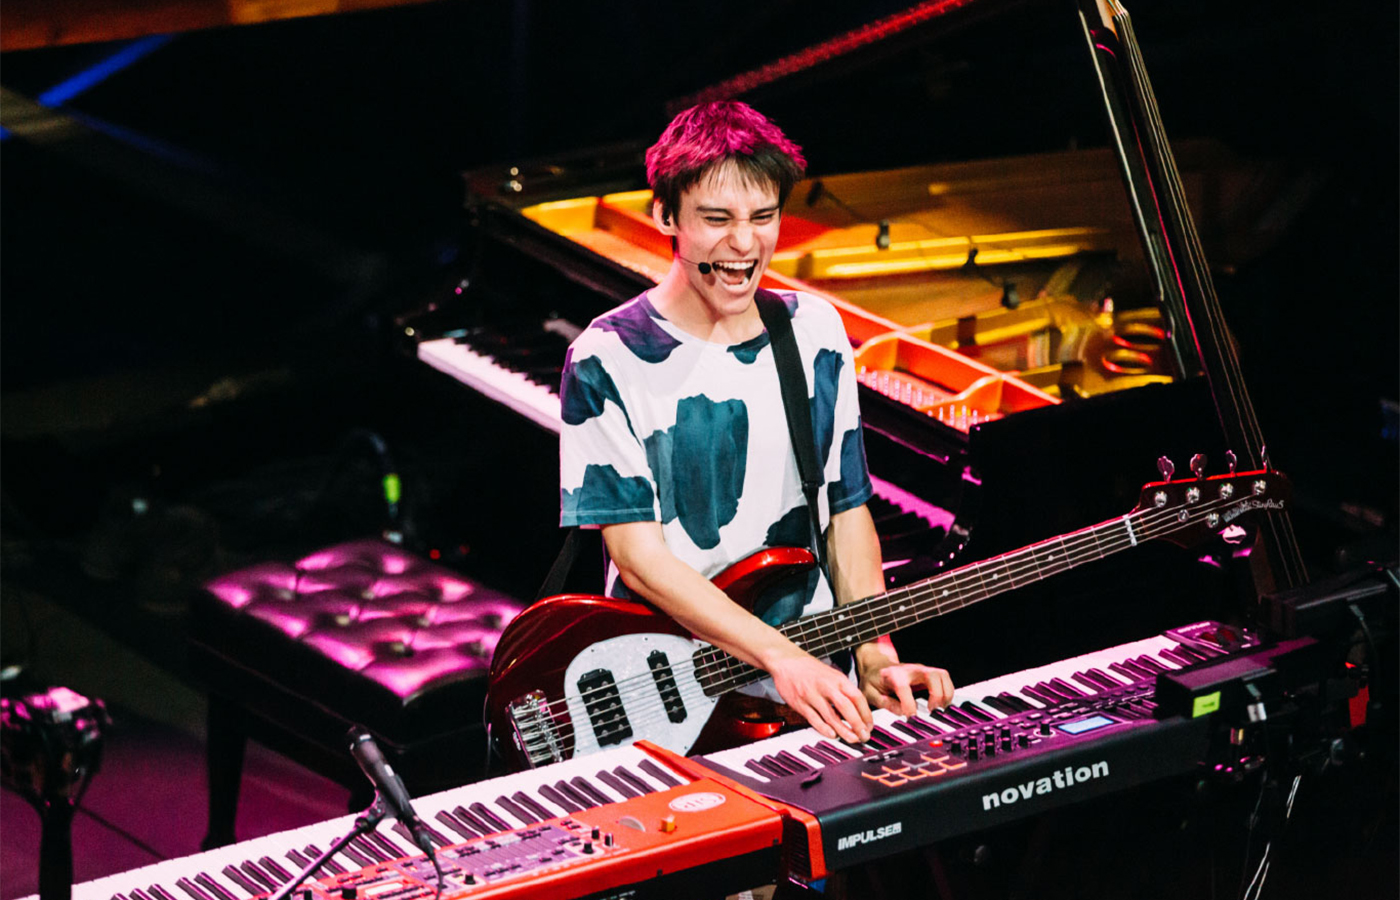 Quel gran genio di Jacob Collier